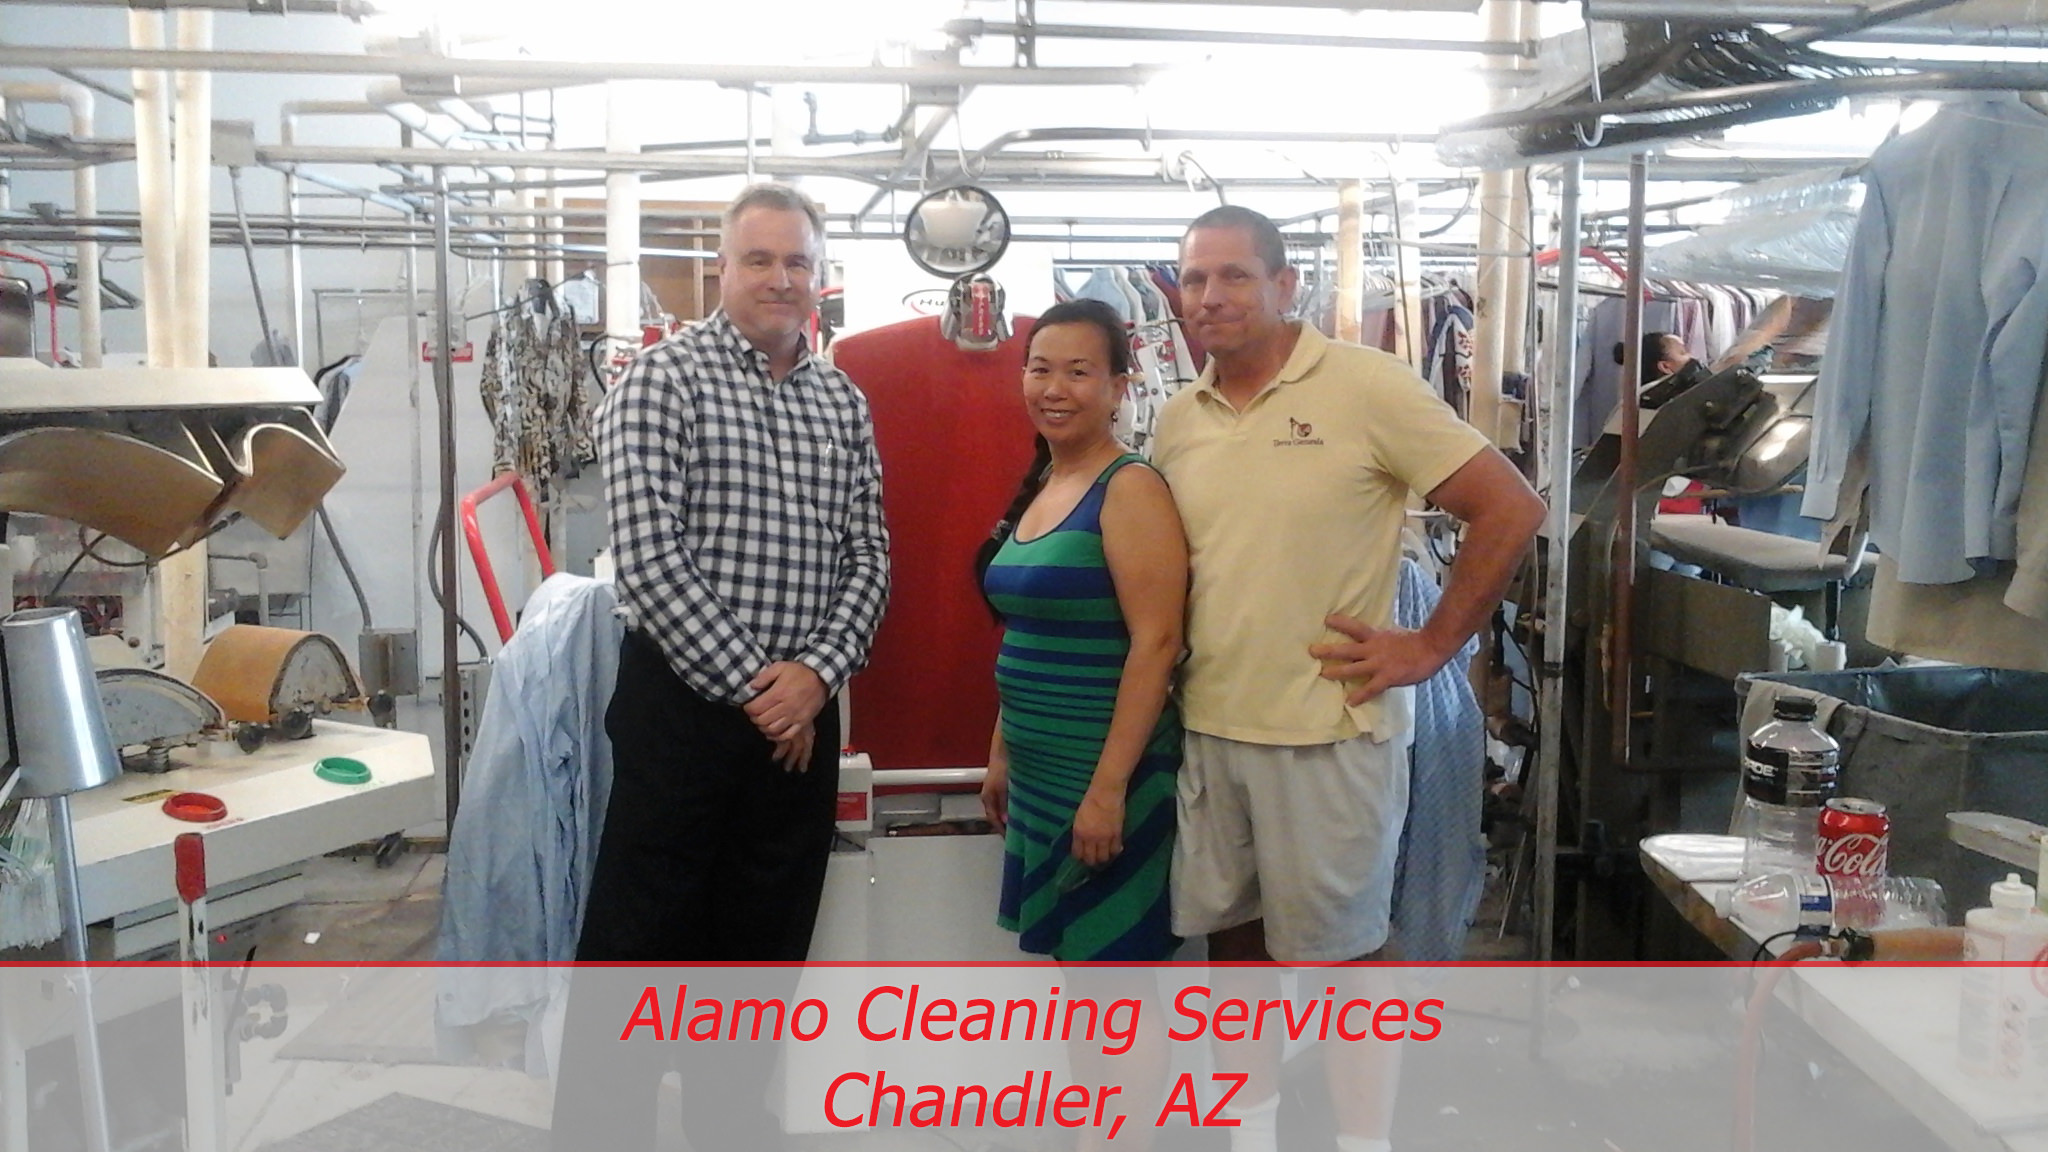 Alamo Cleaning Services